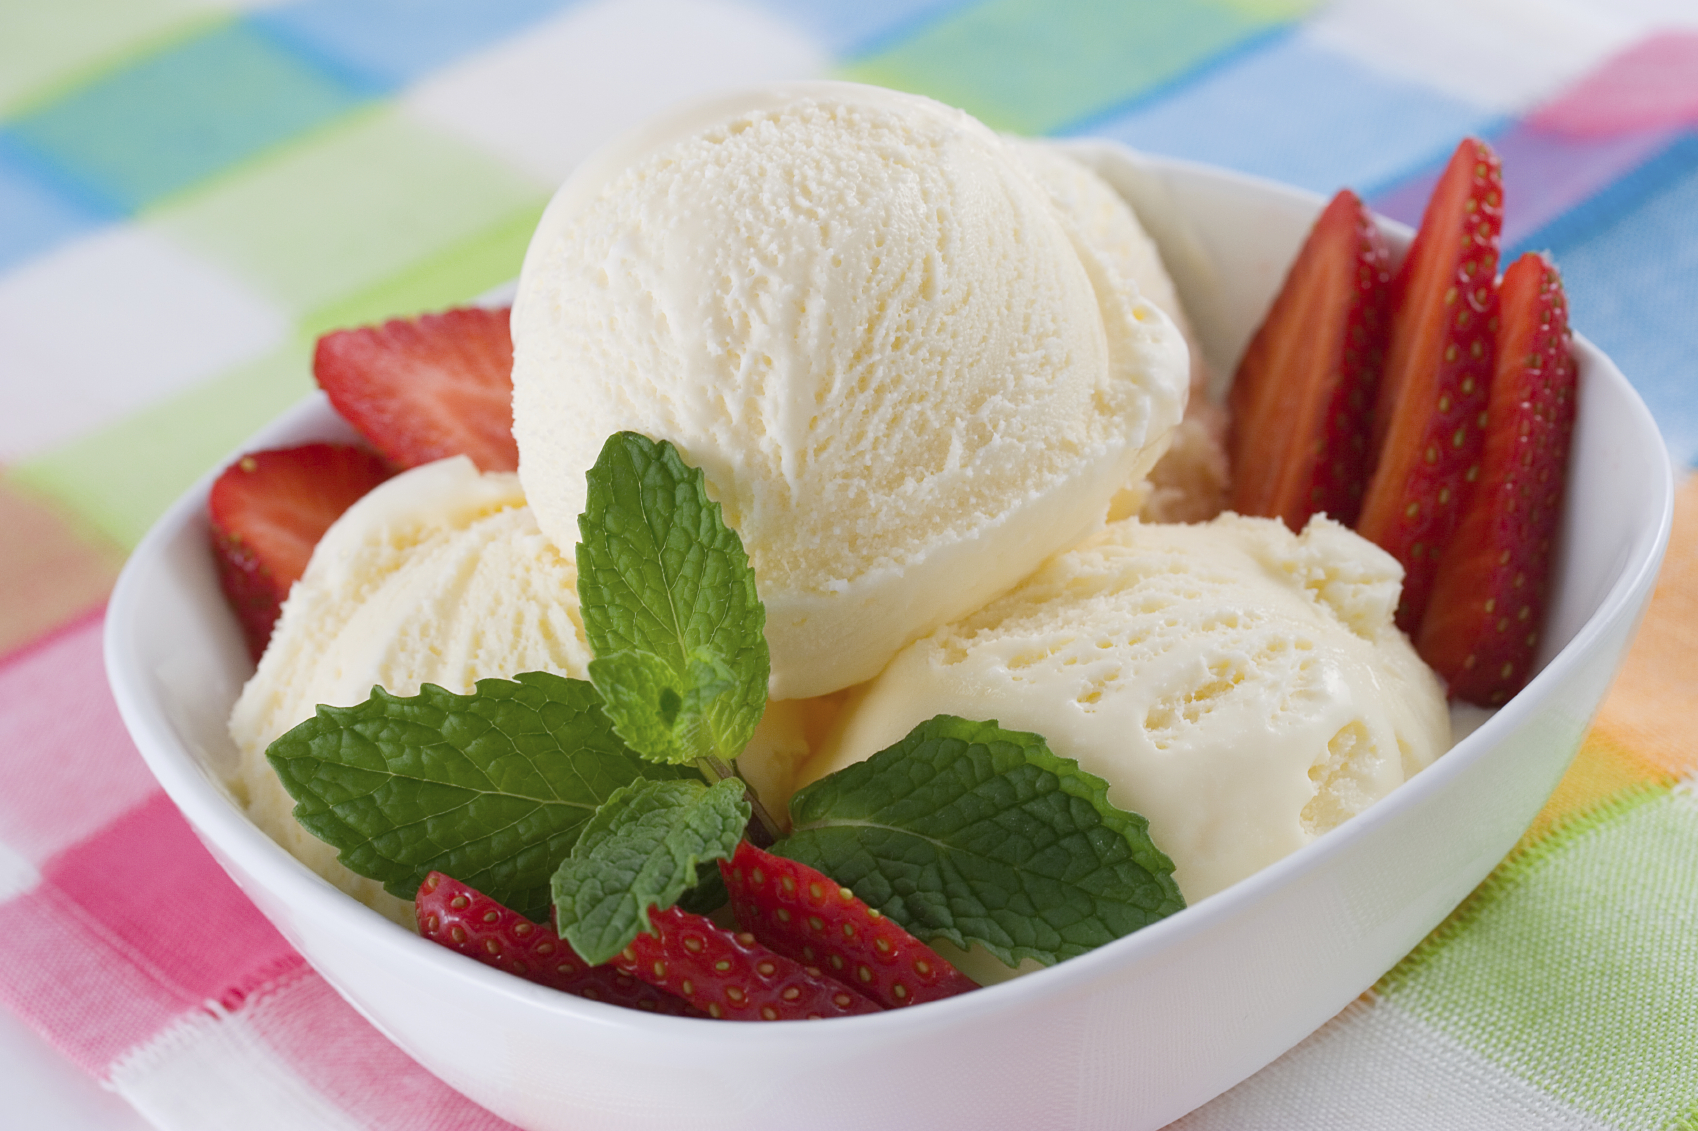 Ice cream with strawberries and mint